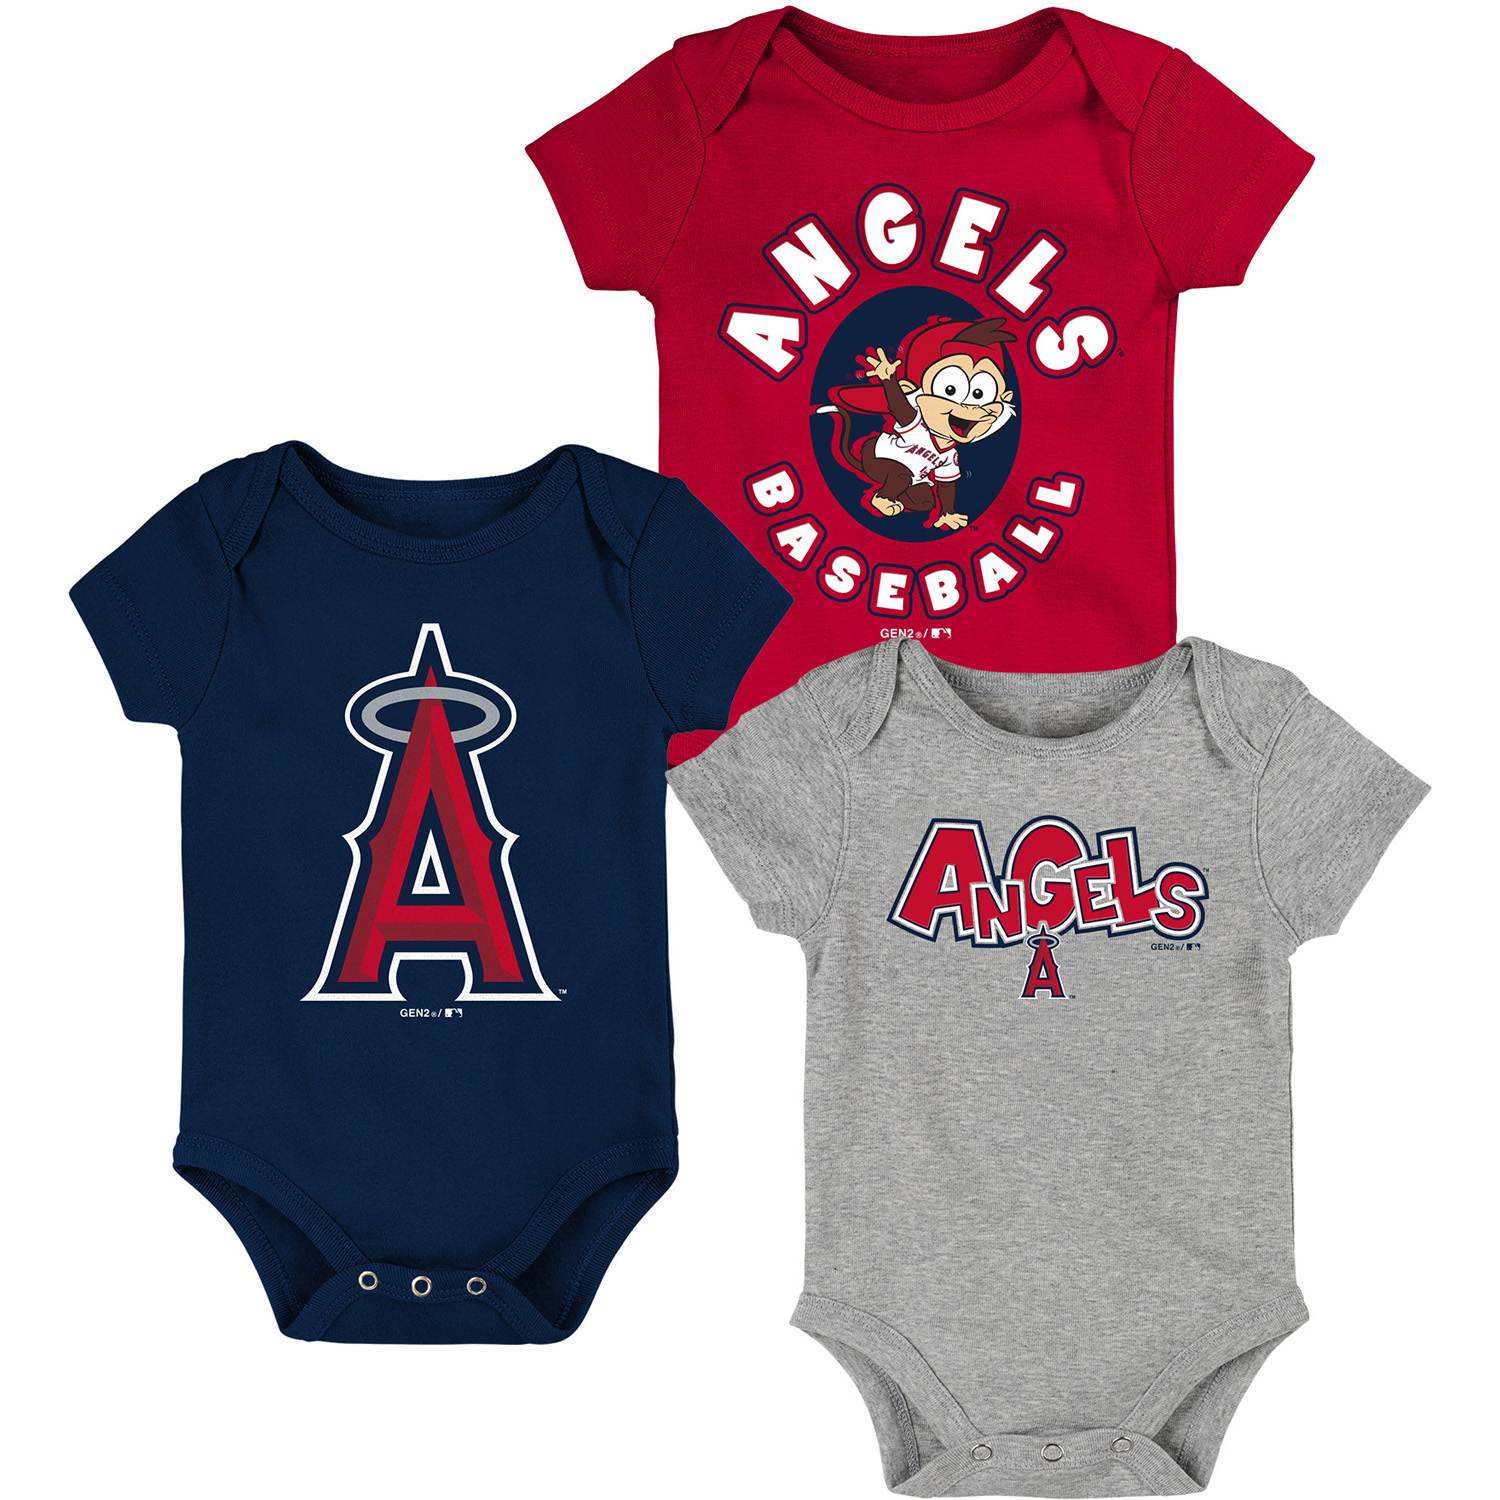 Los Angeles Angels Newborn & Infant Everyday Fan Three-Pack Bodysuit Set - Red/Navy/Gray